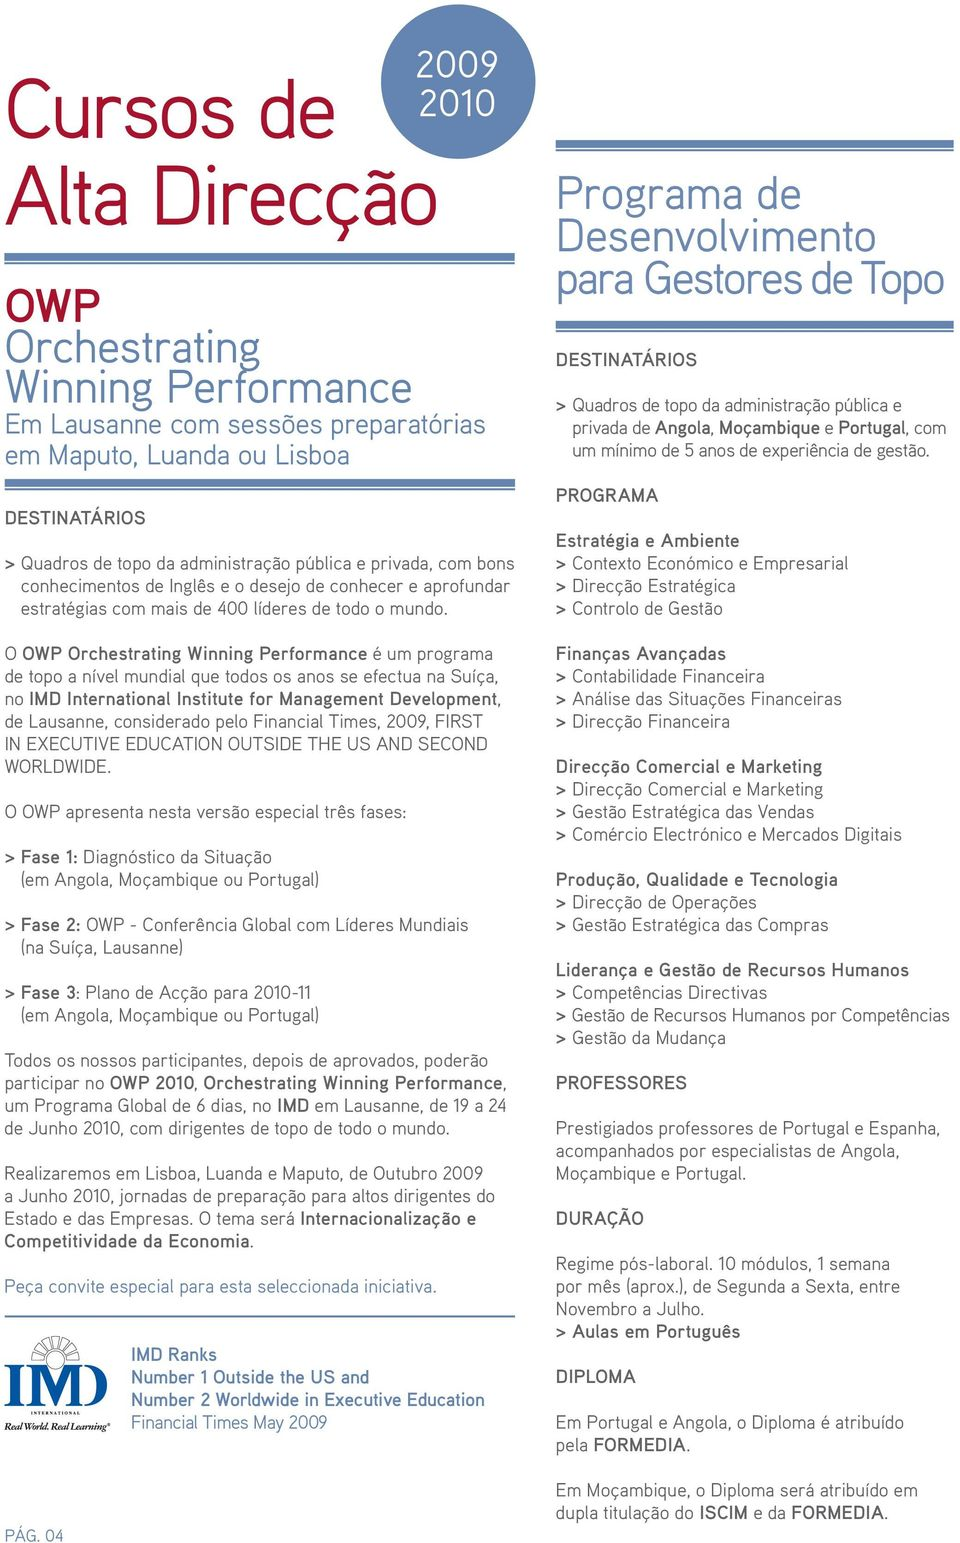 O OWP Orchestrating Winning Performance é um programa de topo a nível mundial que todos os anos se efectua na Suíça, no IMD International Institute for Management Development, de Lausanne,